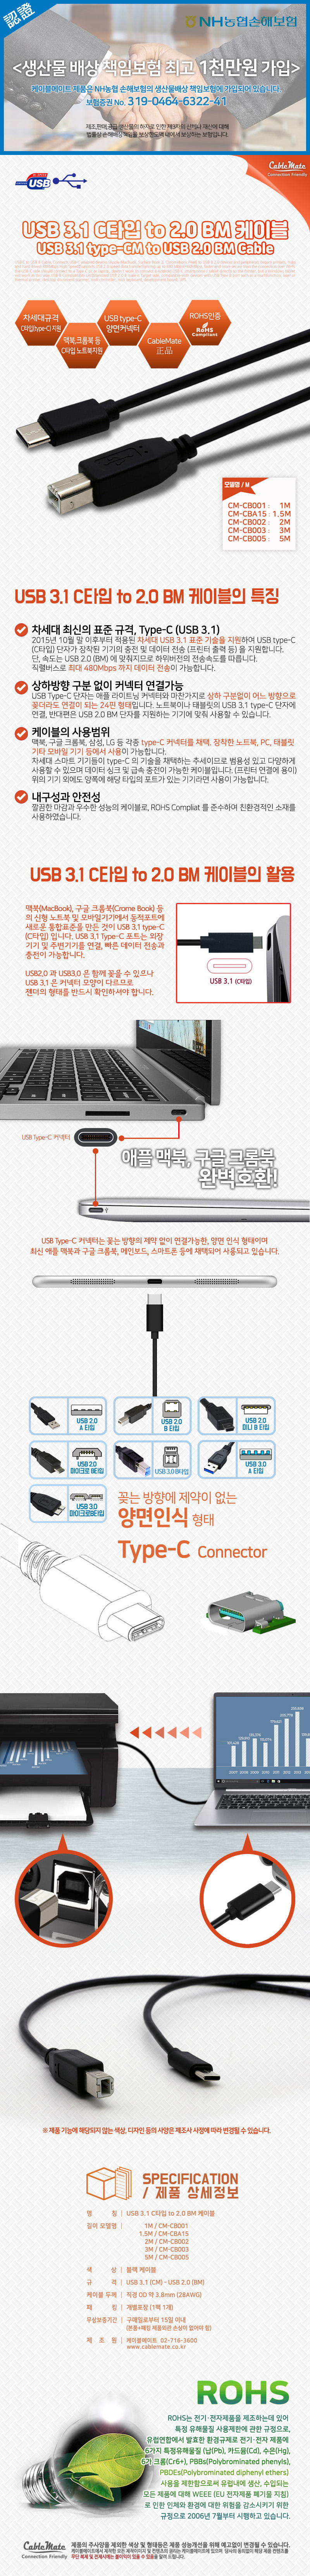 CABLEMATE USB 2.0 Type C to Type B 케이블 (CM-CB005, 5m)